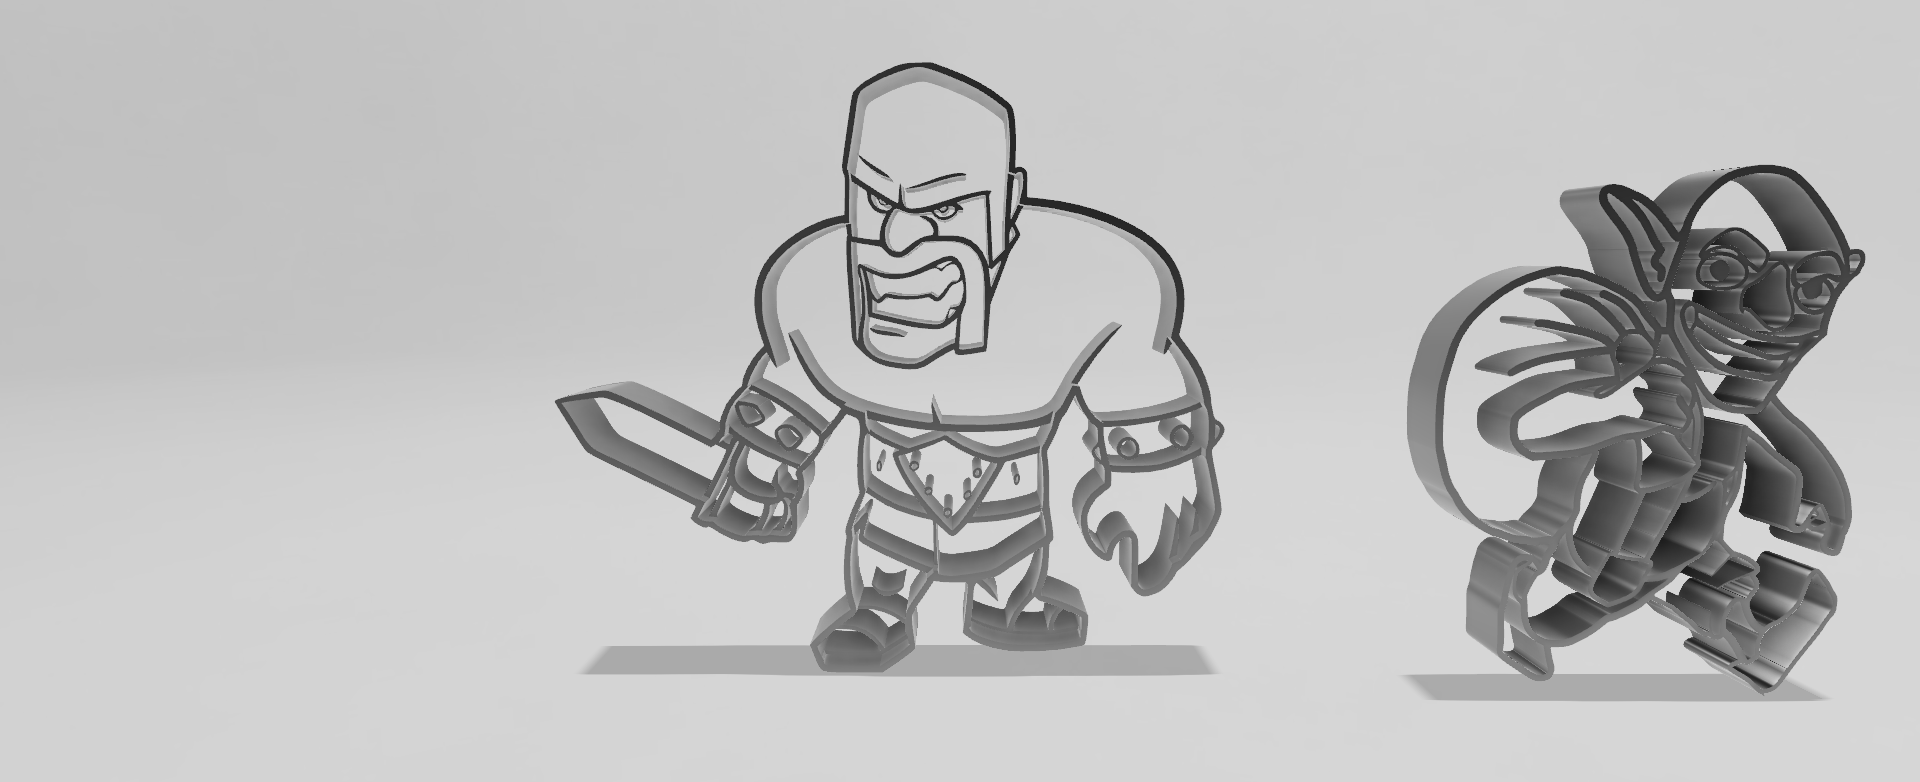 set clash royale v4.png Download STL file barbaro clash of royale cookie cutter • Template to 3D print, Geralp